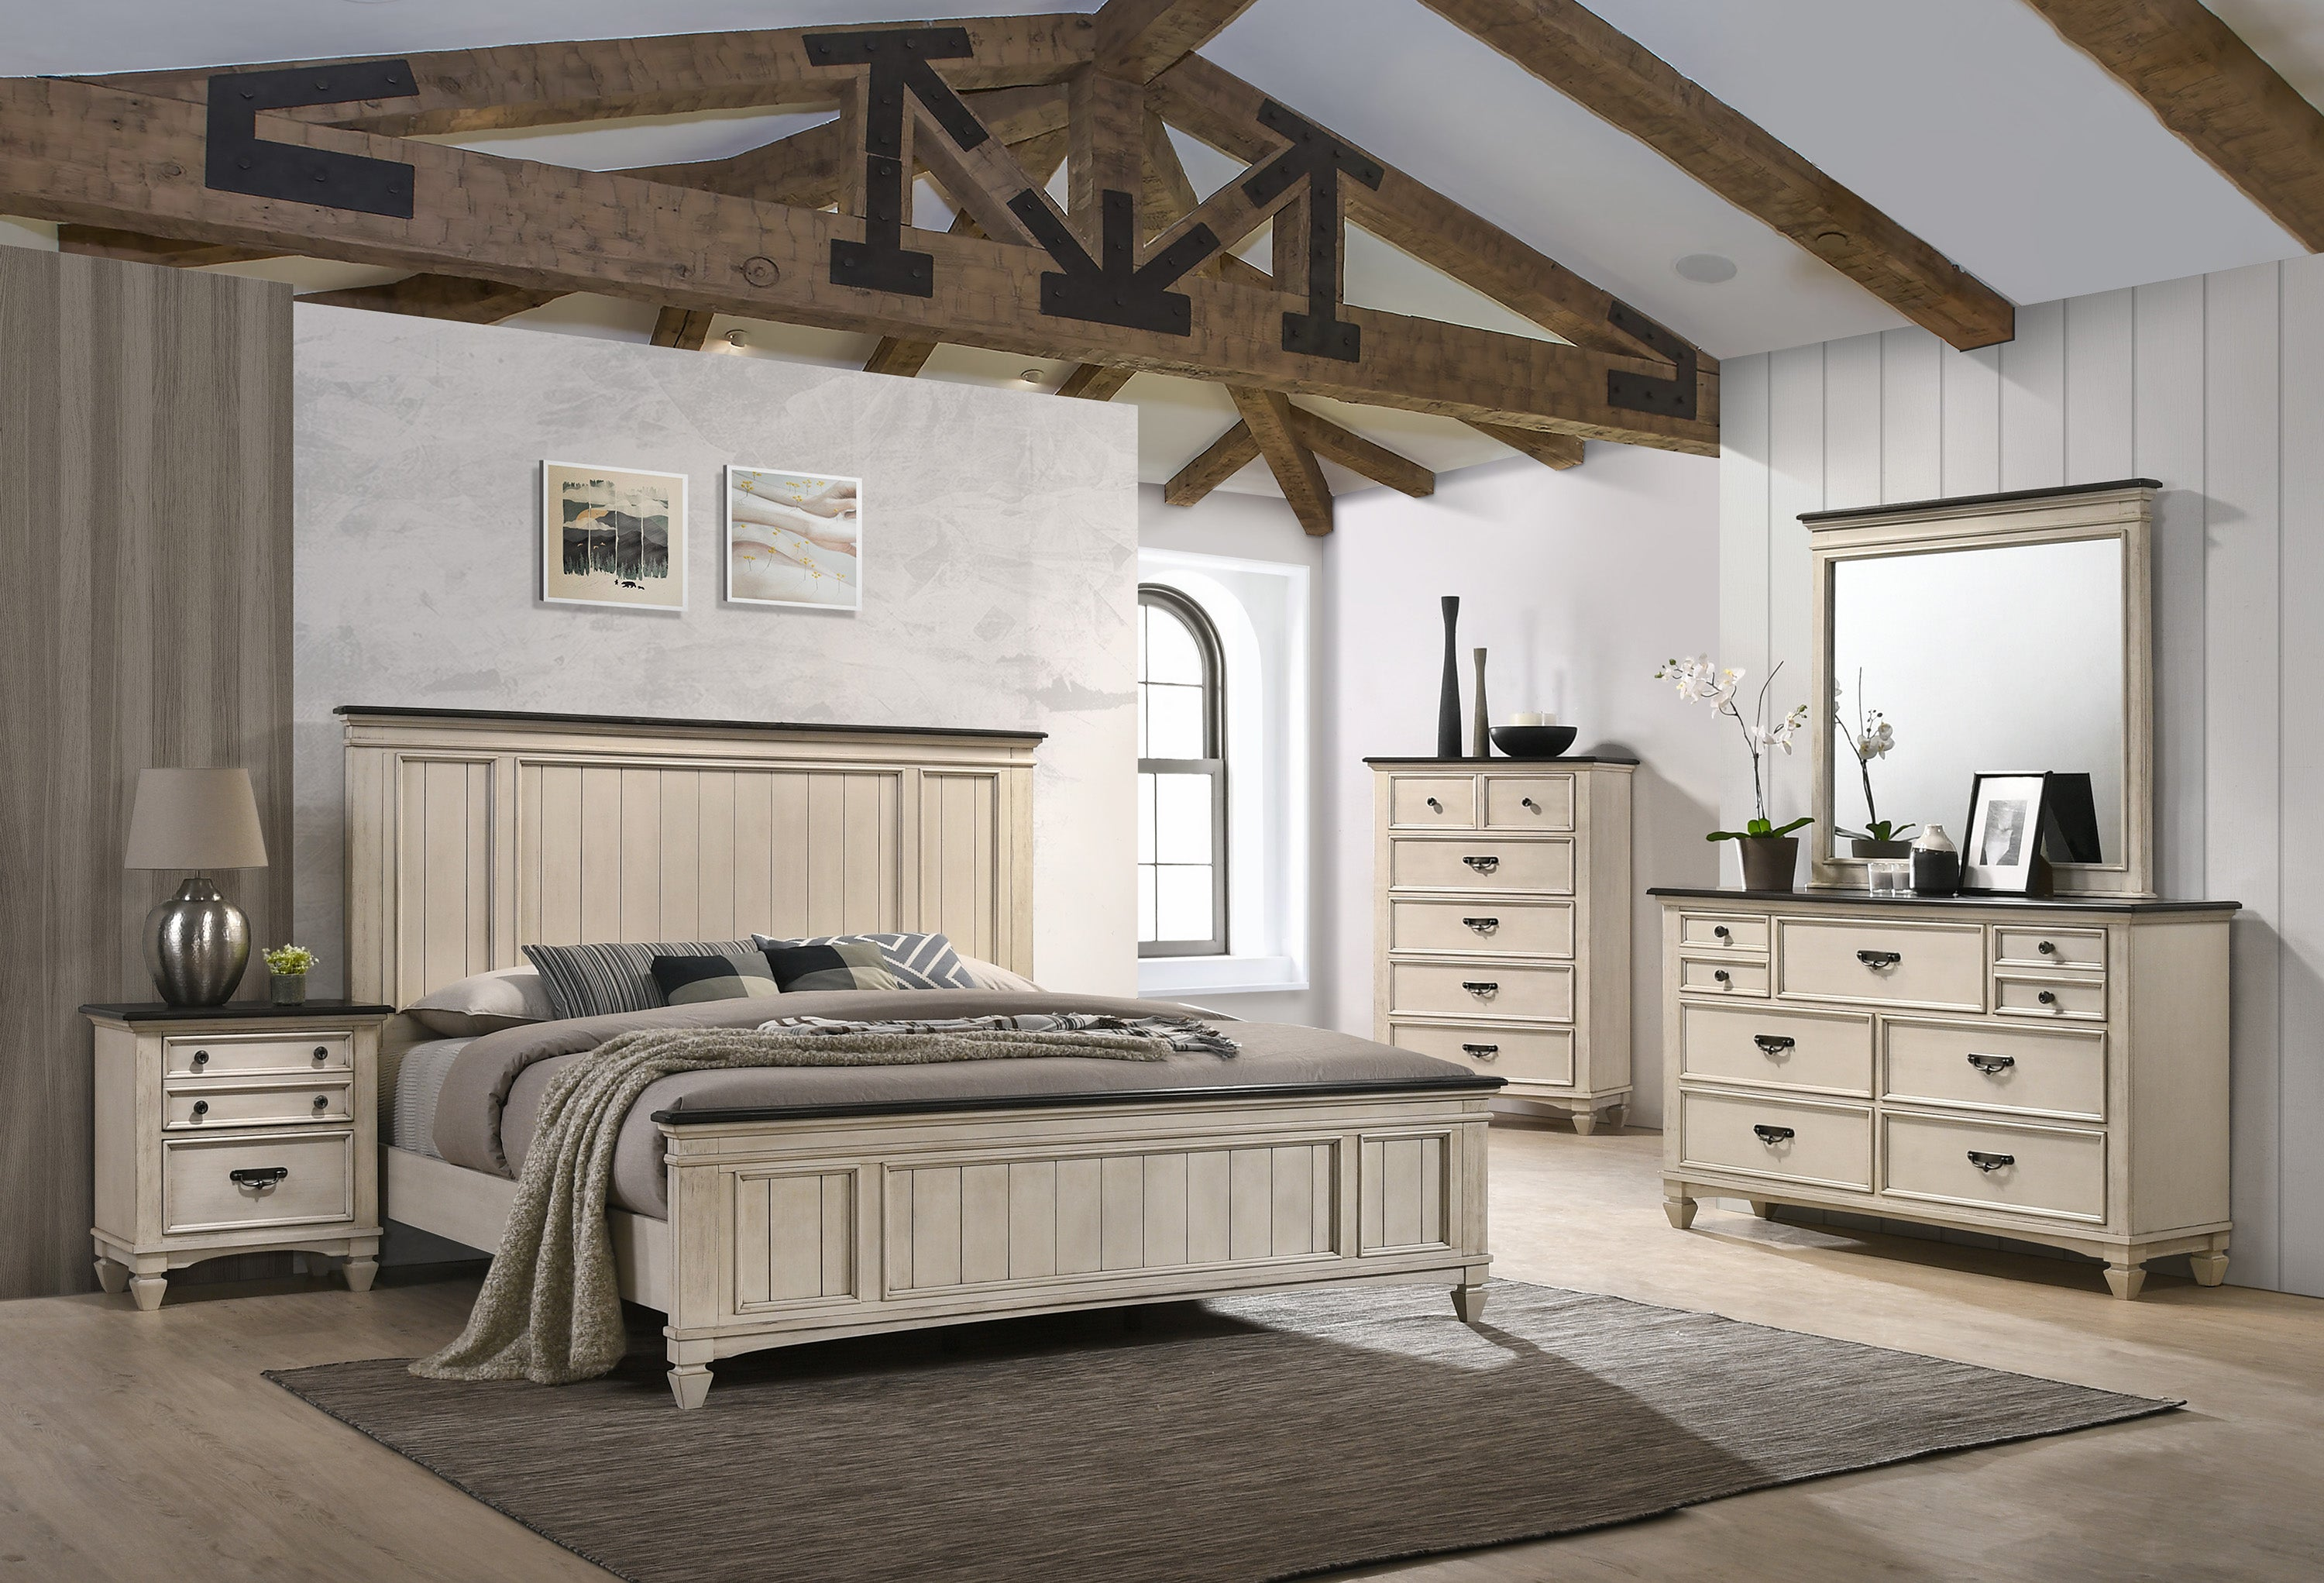 Modern Farmhouse Sawyer Queen Size Bedroom Set My Furniture Place